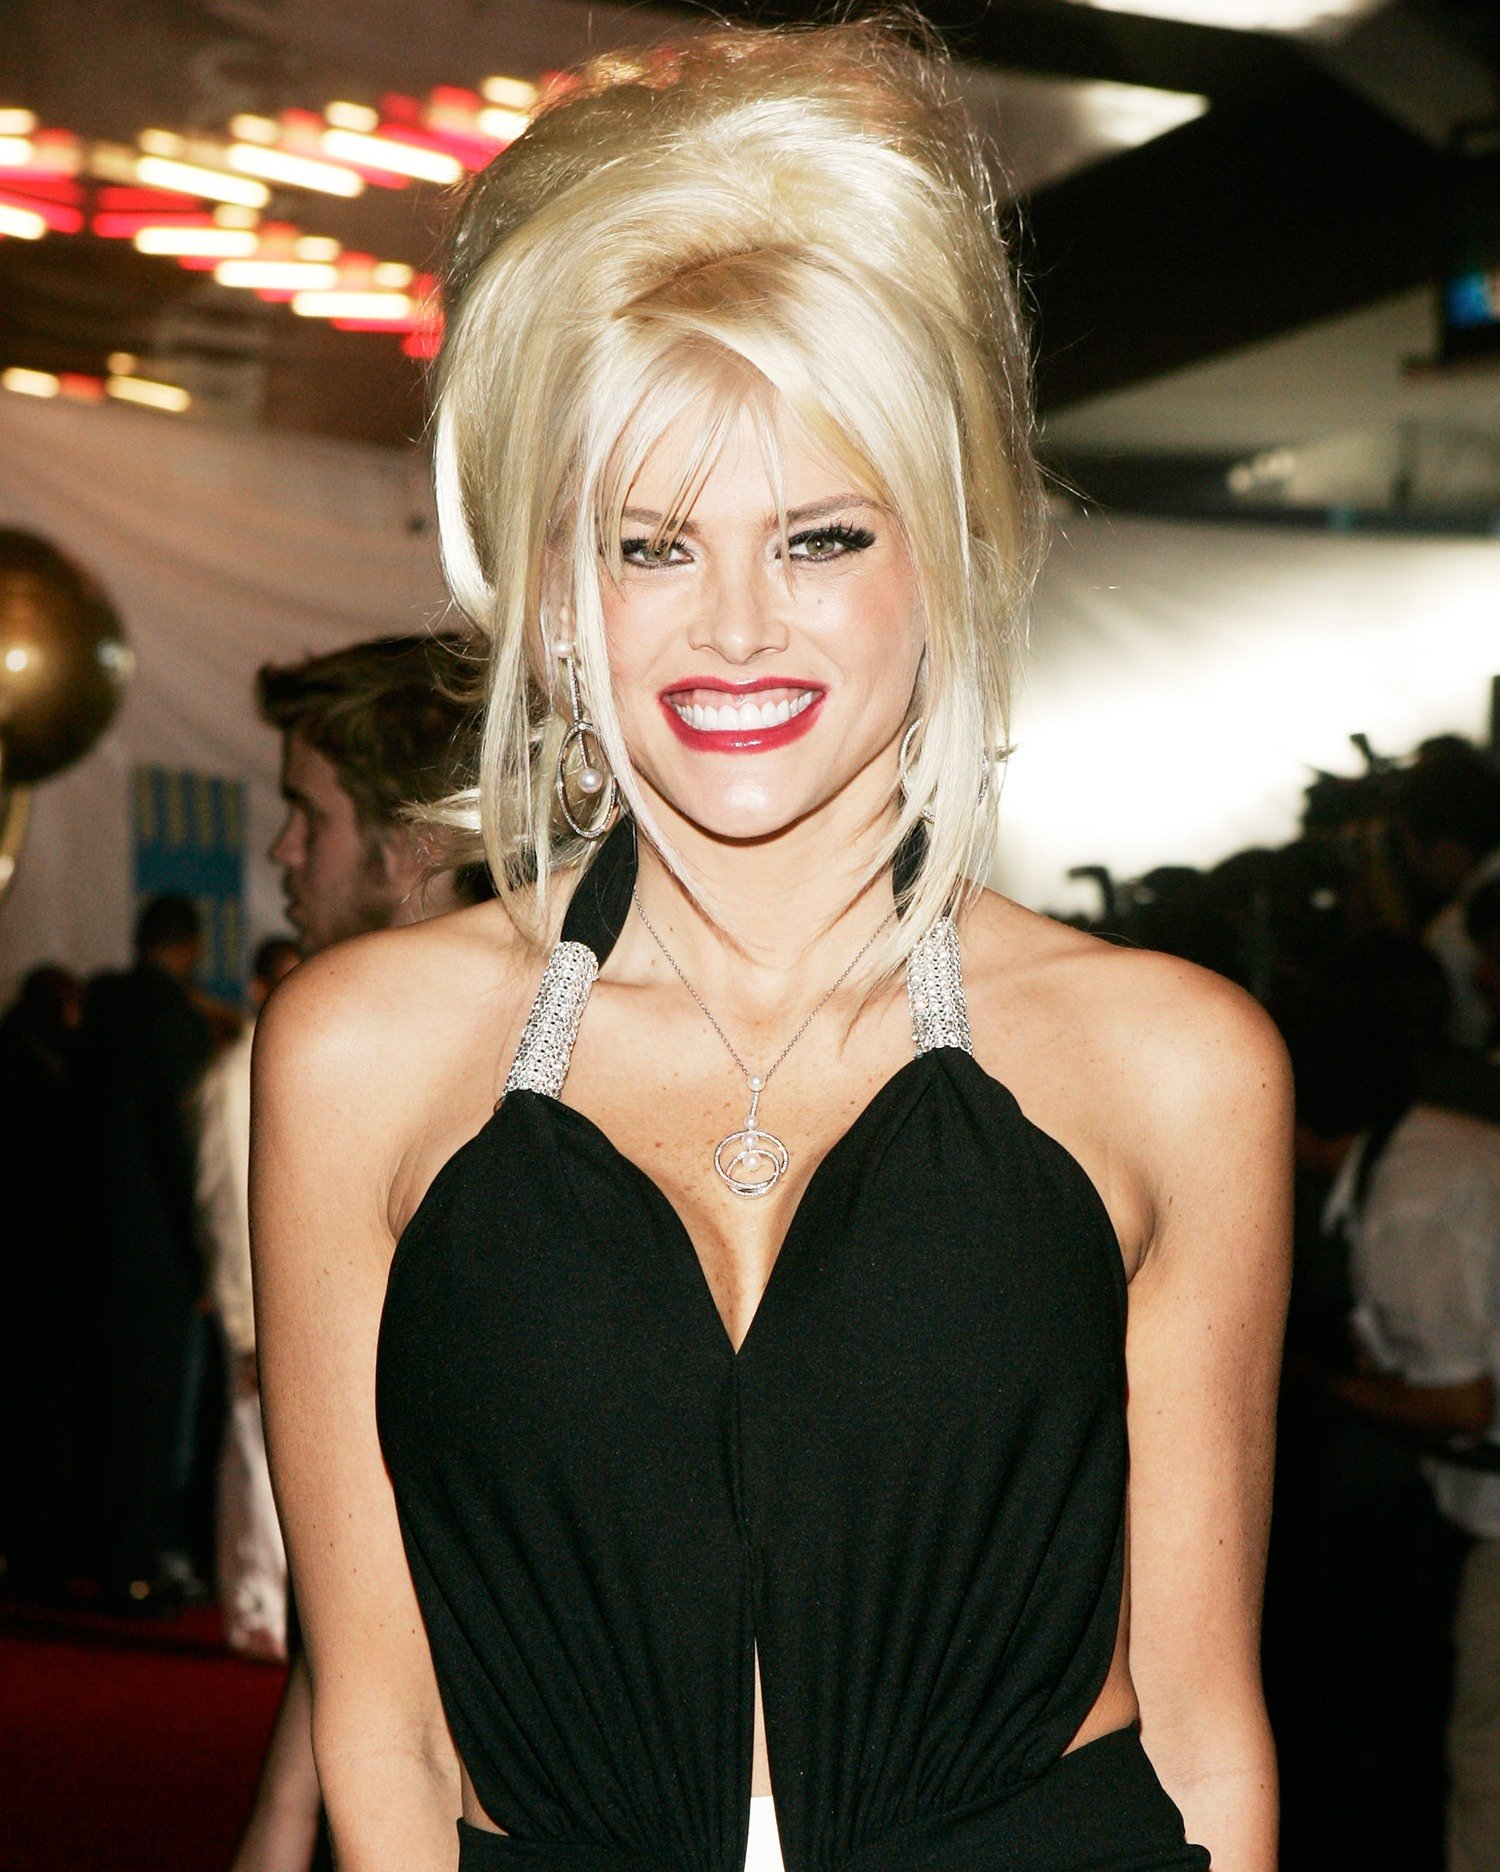 anna nicole smith a7b87f31 a6d2 41e0 a953 b4ad55c7aafc 25 Celebrity Deaths That Shocked The World